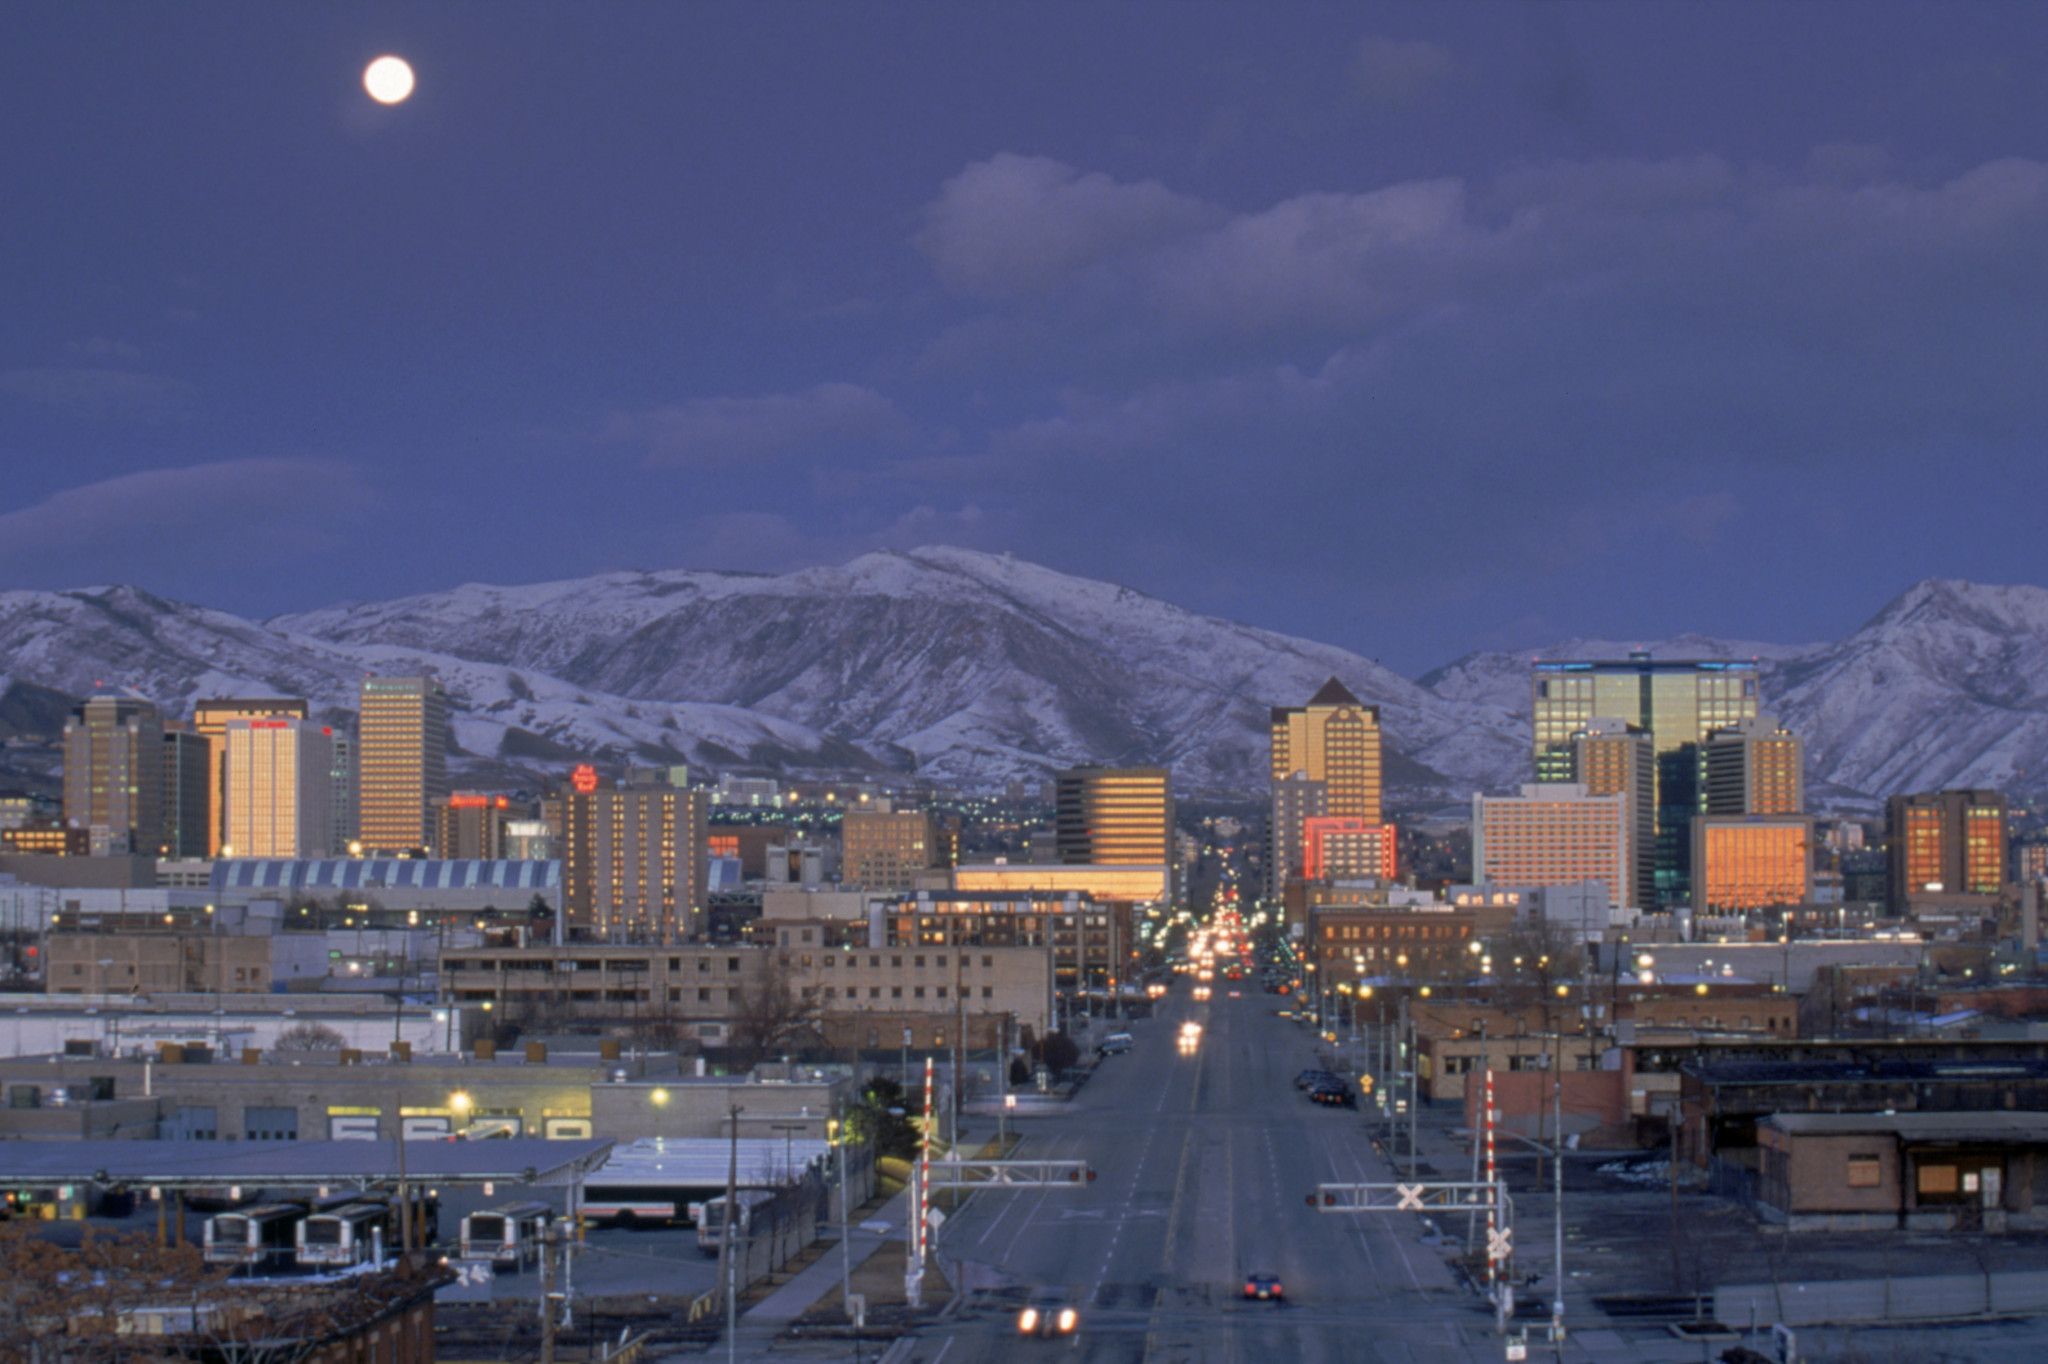 Salt Lake City decision on 2030 or 2034 Winter Olympics could be made after Beijing 2022